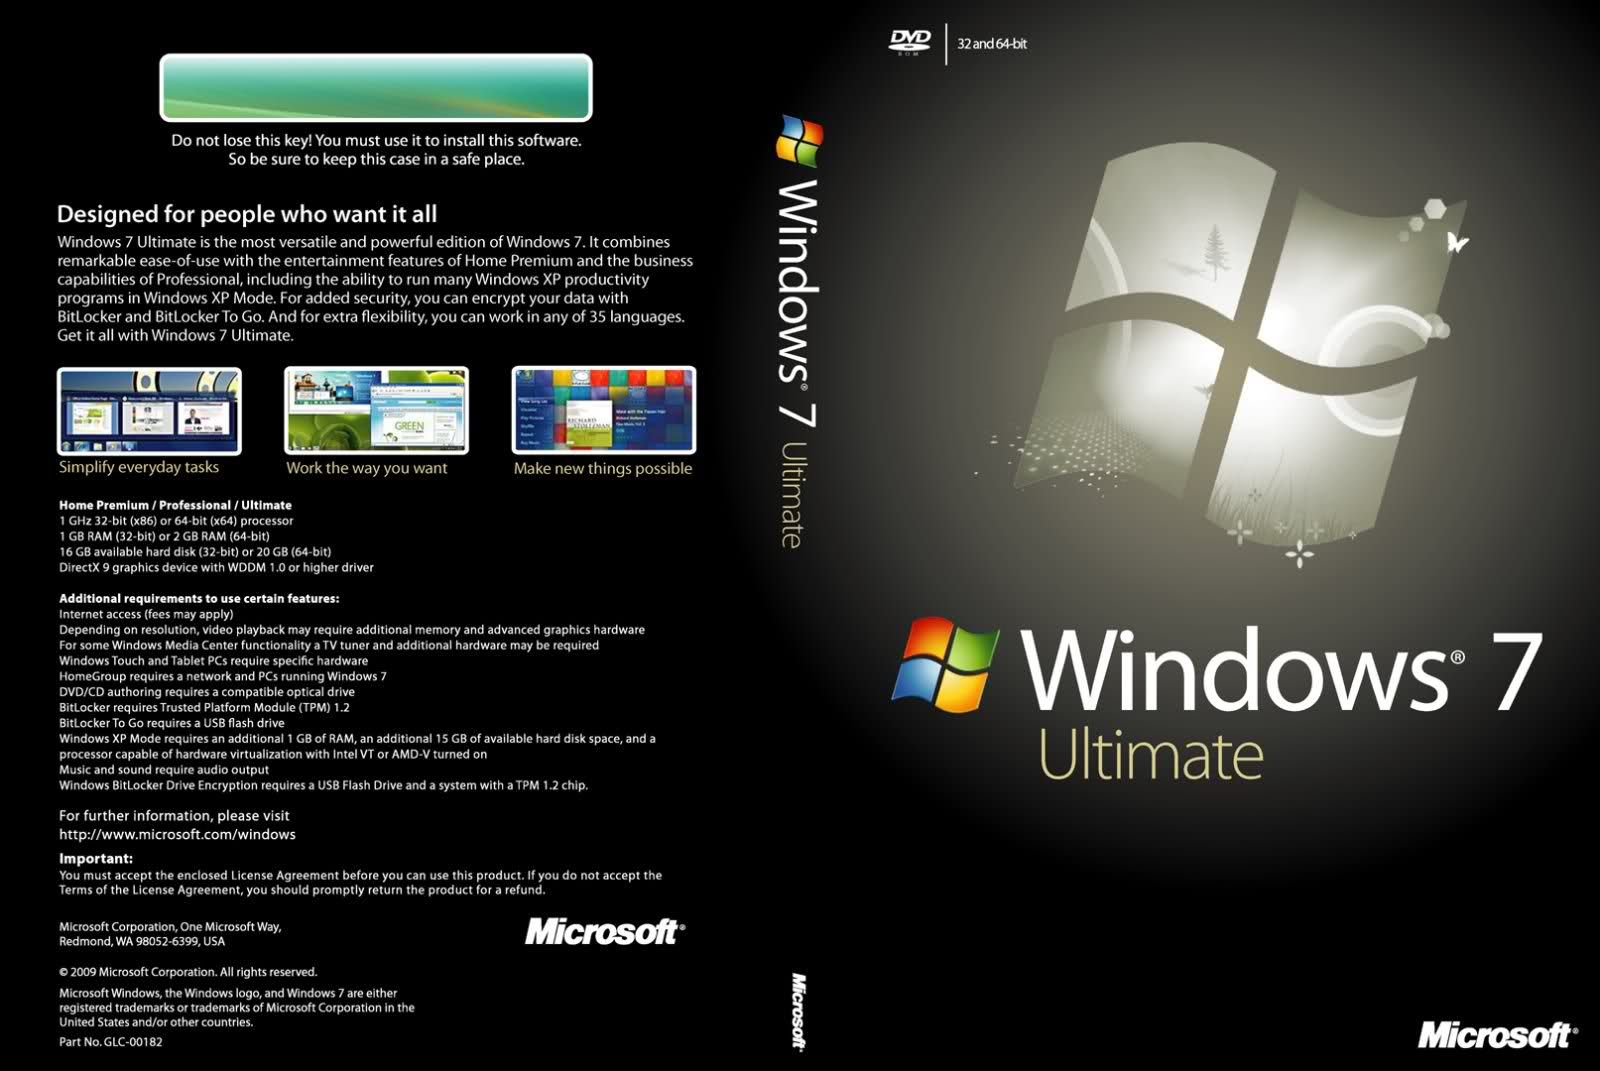 activate windows 7 ultimate 32 bit product key free